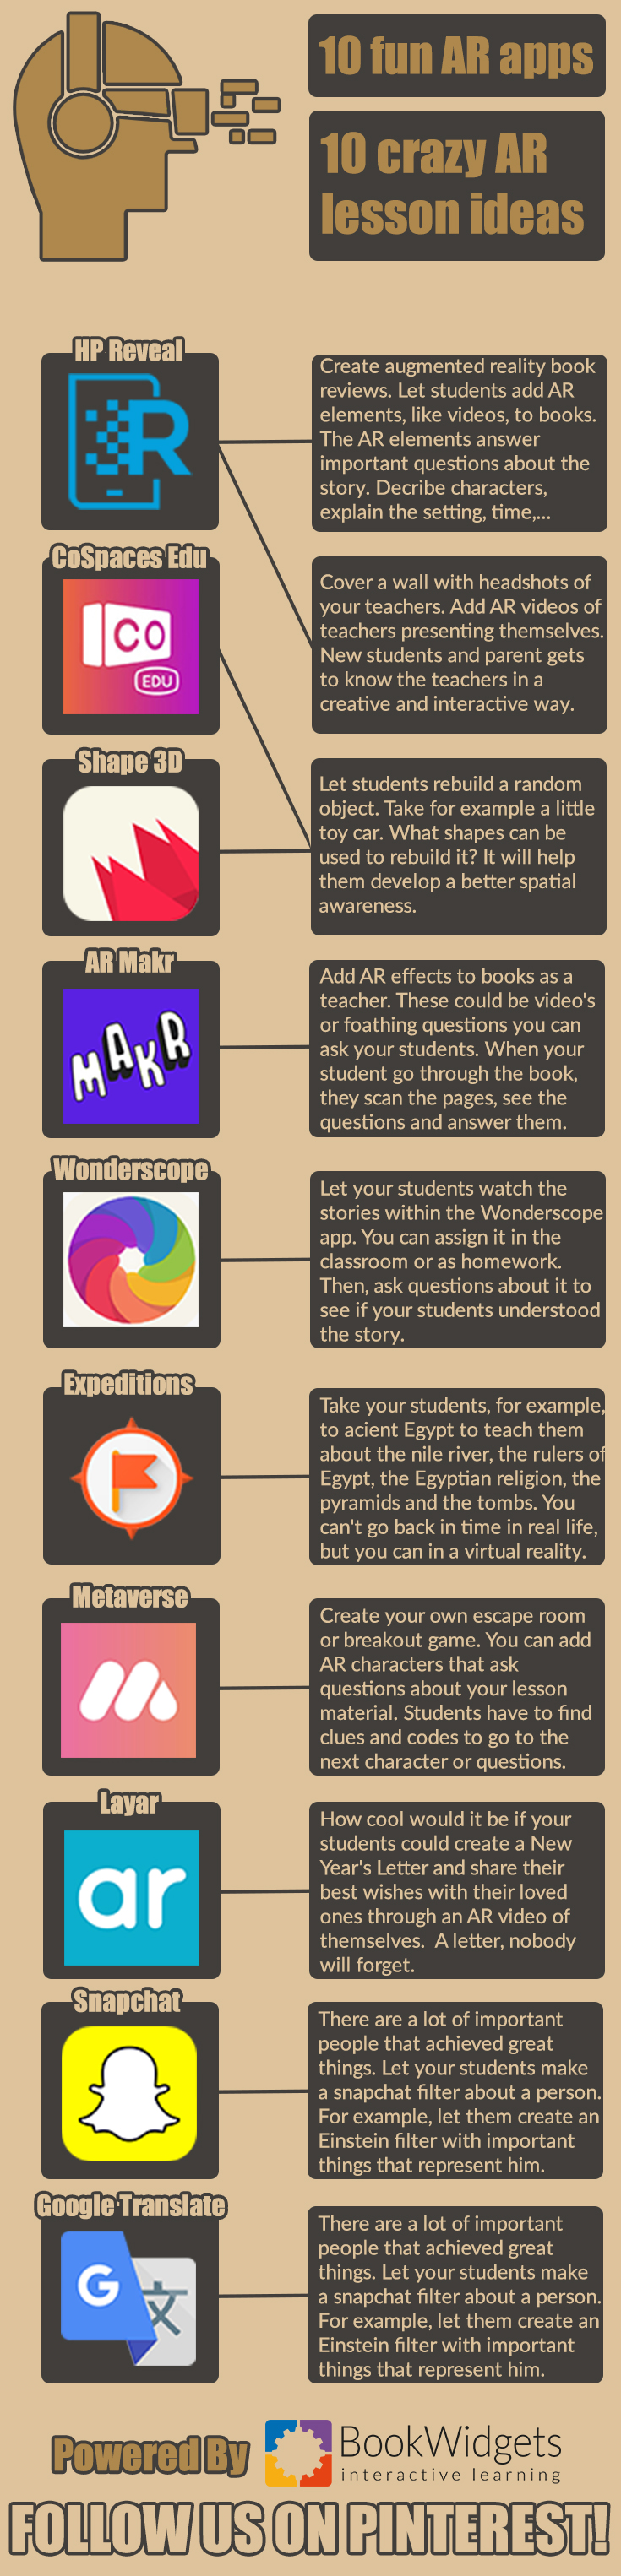 10 augmented reality apps for teachers and 10 lesson ideas with augmented reality